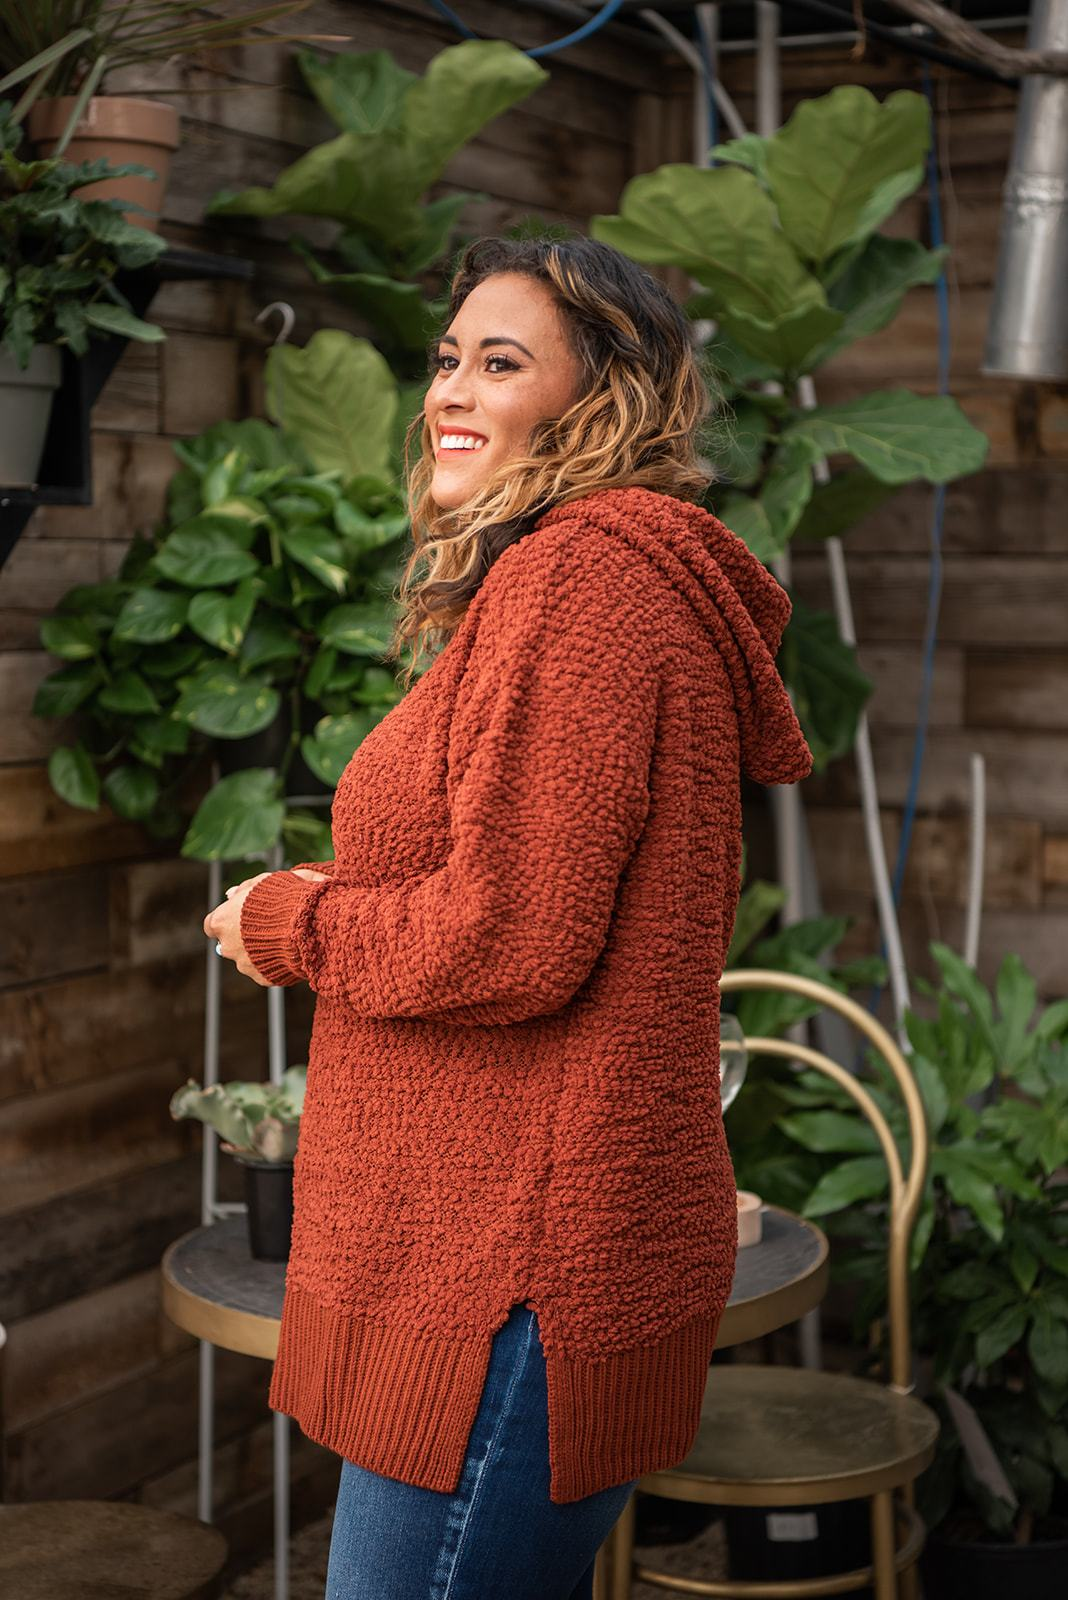 Too Cozy To Care Hooded Sweater - Lola Cerina Boutique